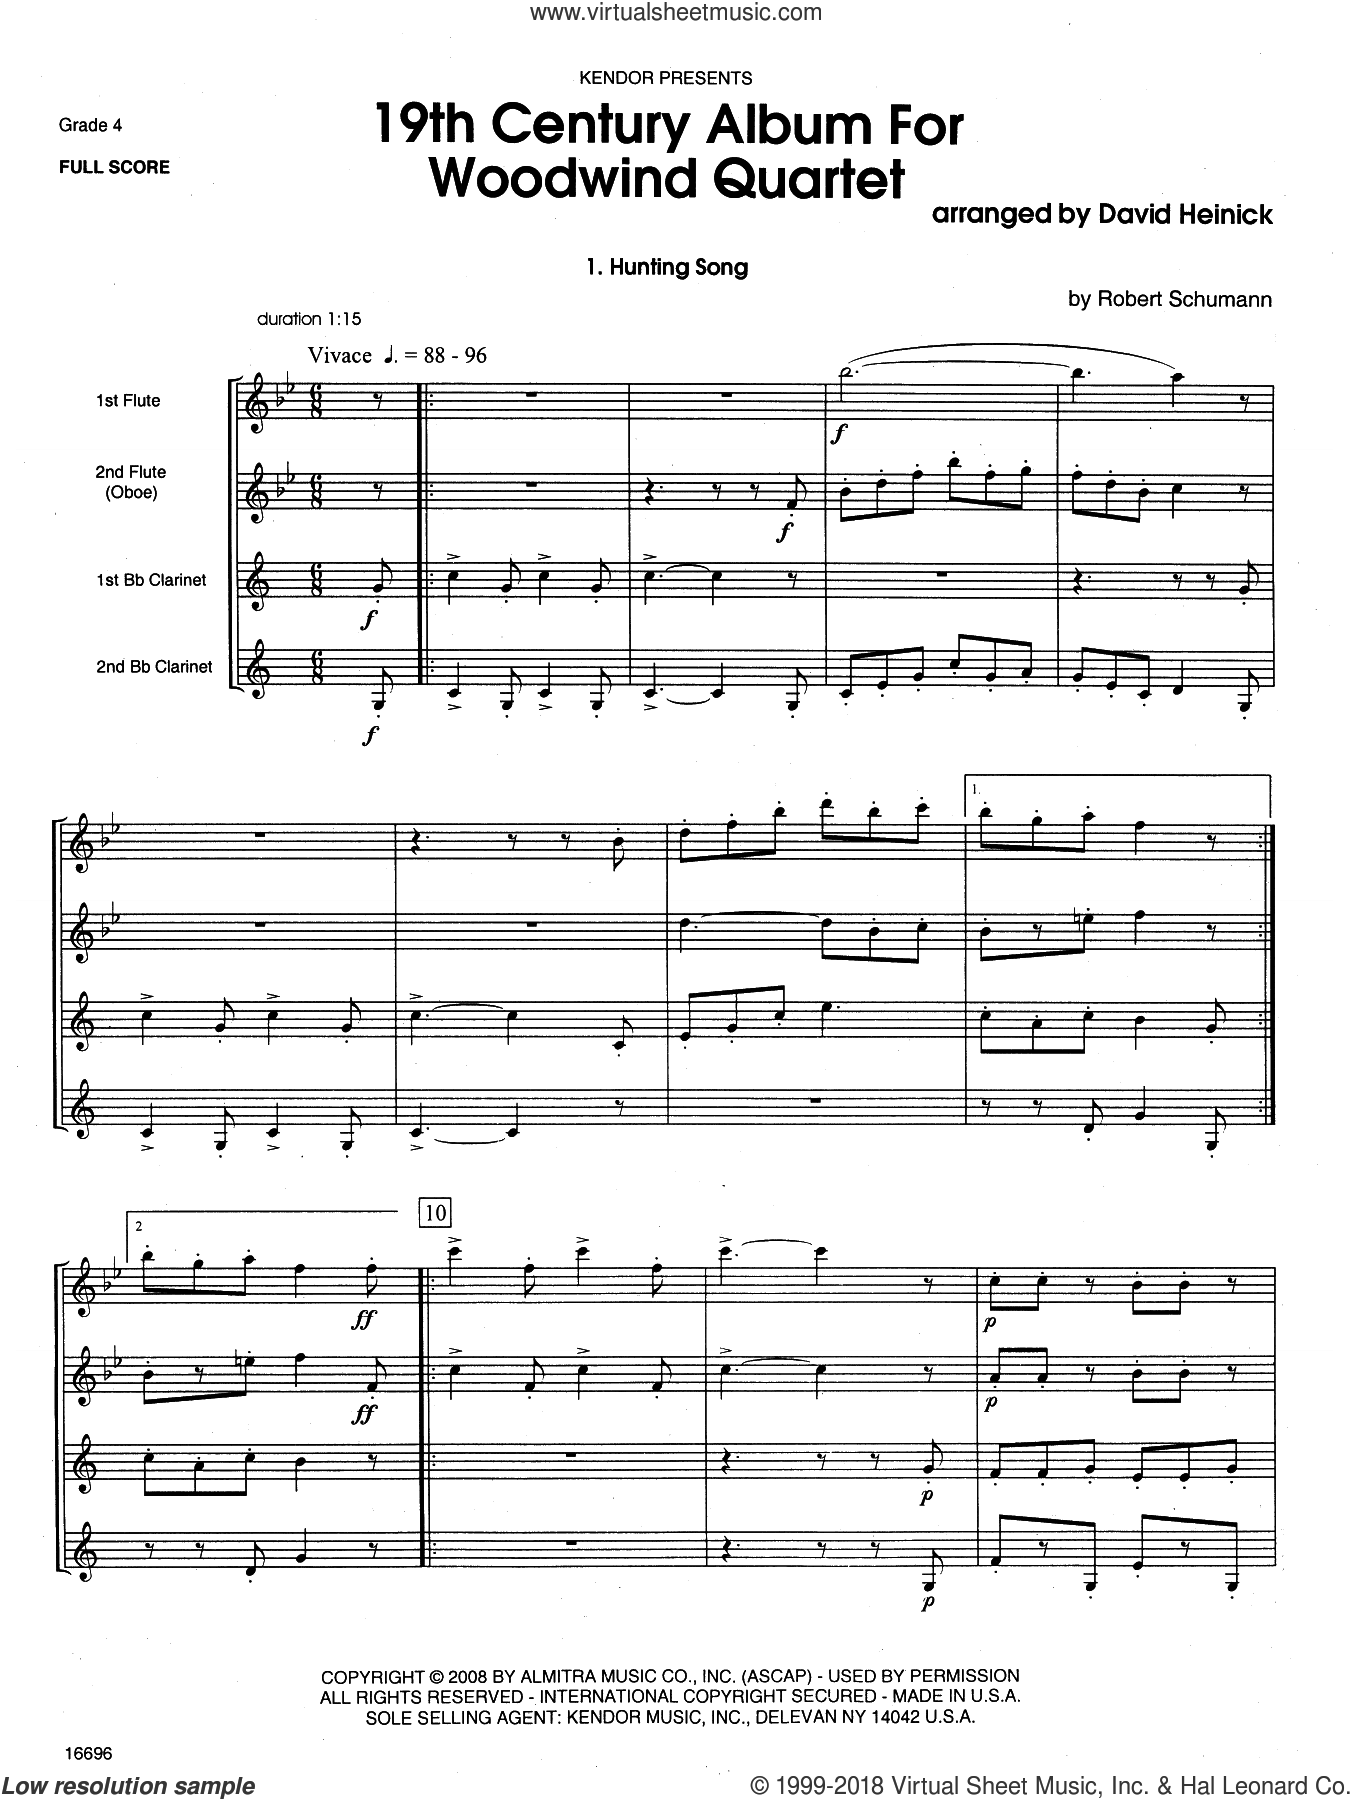 19th Century Album For Woodwind Quartet (COMPLETE) sheet music for wind quartet by David Heinick, classical score, intermediate skill level